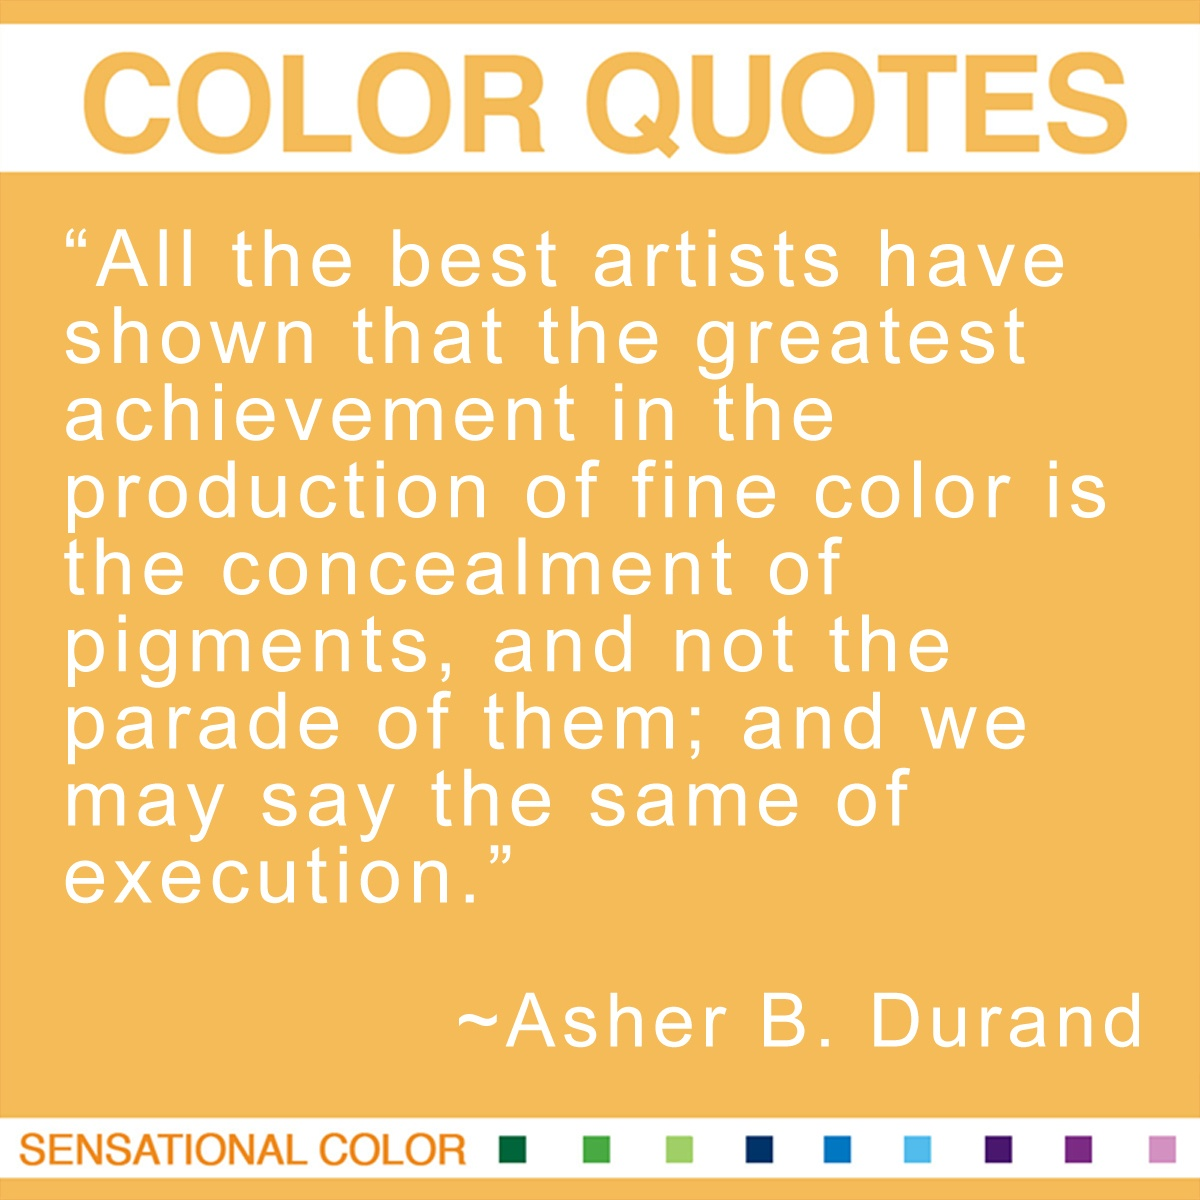 """All the best artists have shown that the greatest achievement in the production of fine color is the concealment of pigments, and not the parade of them; and we may say the same of execution."" - Asher B. Durand"